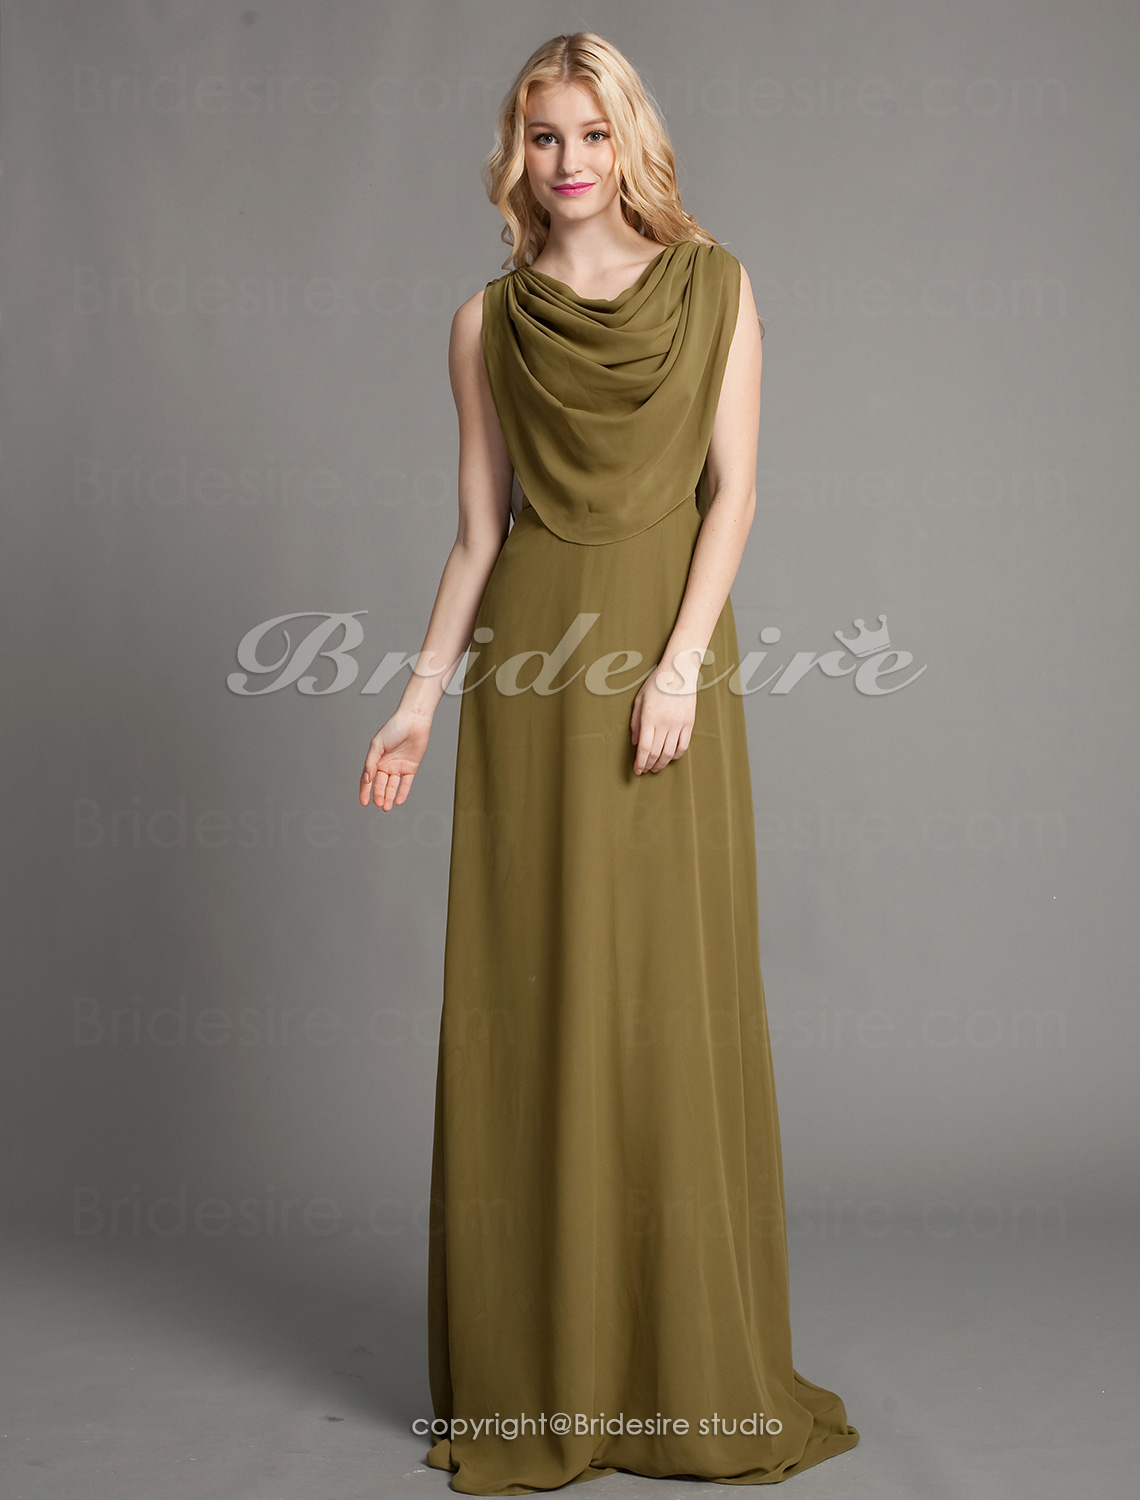 Sheath/Column Chiffon Floor-length Cowl Evening Dress inspired by Tia Carrere at Grammy